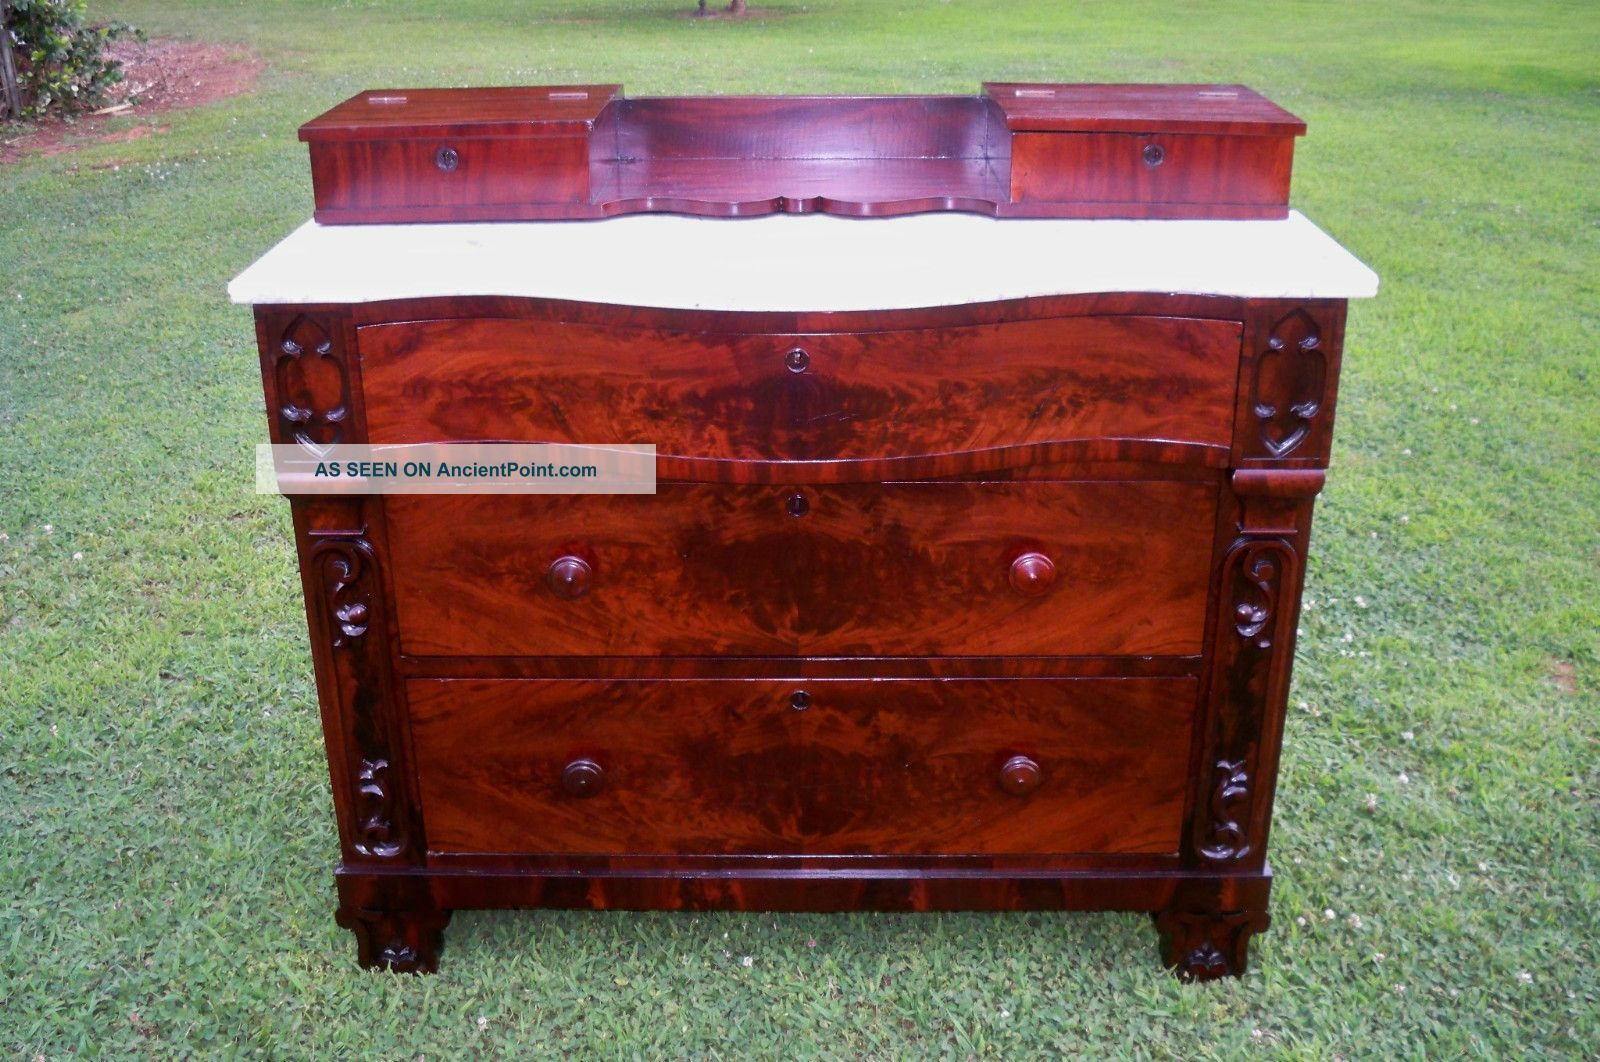 Antique Sideboard Burl Marble Curved Top Refinished 1800-1899 photo